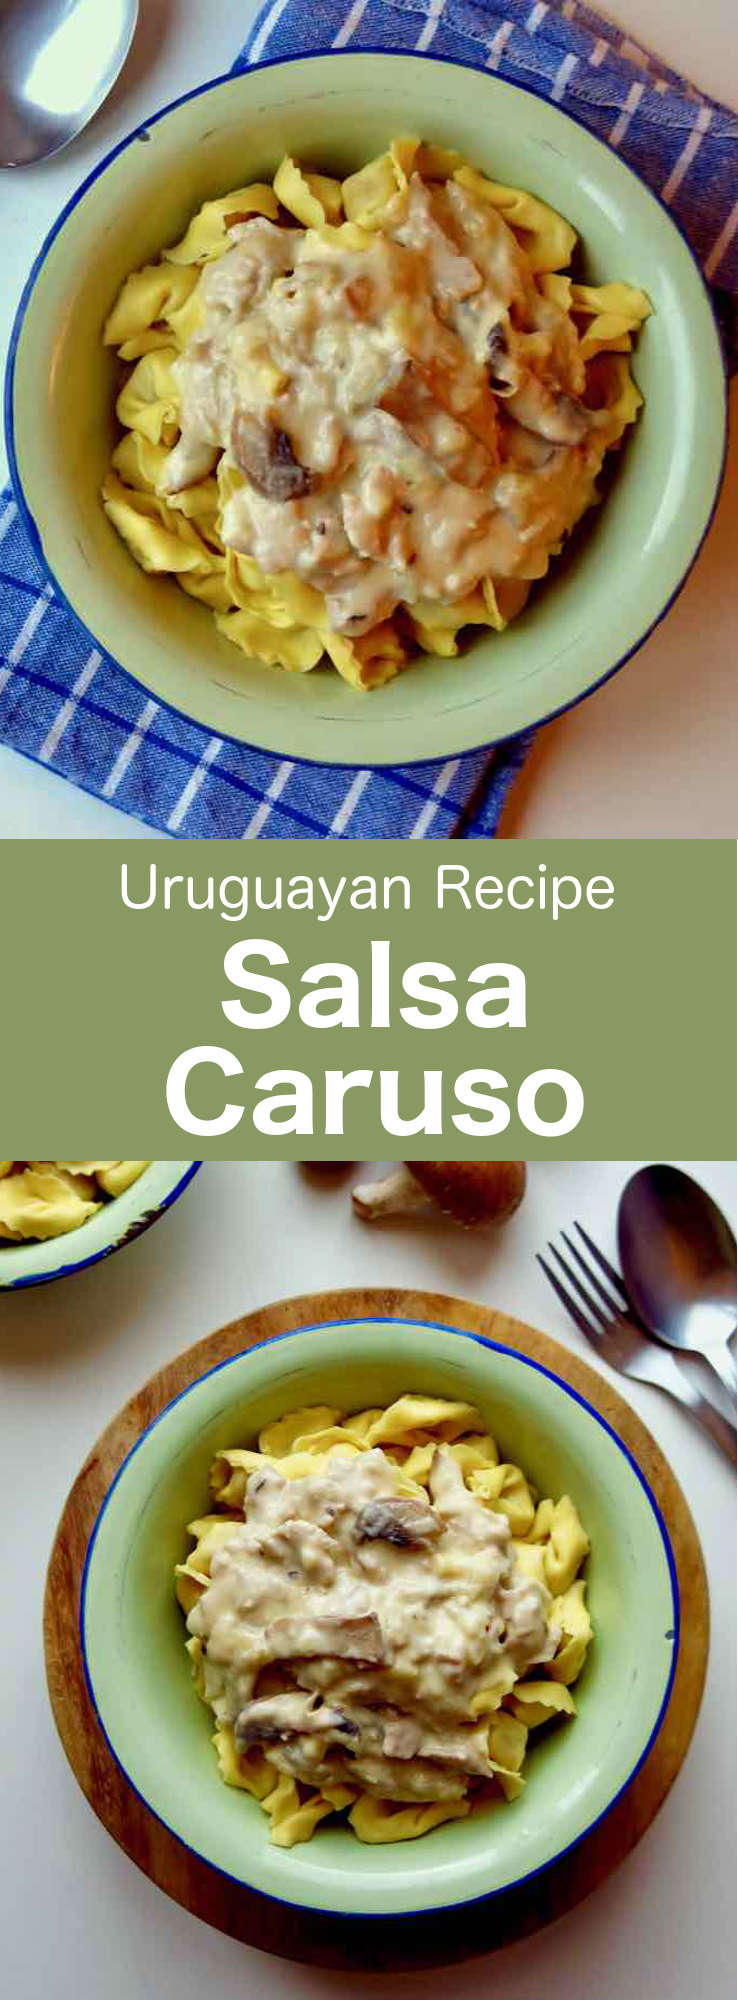 Salsa caruso is a sauce that is served hot, prepared with cream, mushrooms, cooked ham and cheese. #UruguayanRecipe #UruguyanFood #UruguayanCuisine #urugua #LatinFood #LatinRecipe #WorldCuisine #196flavors